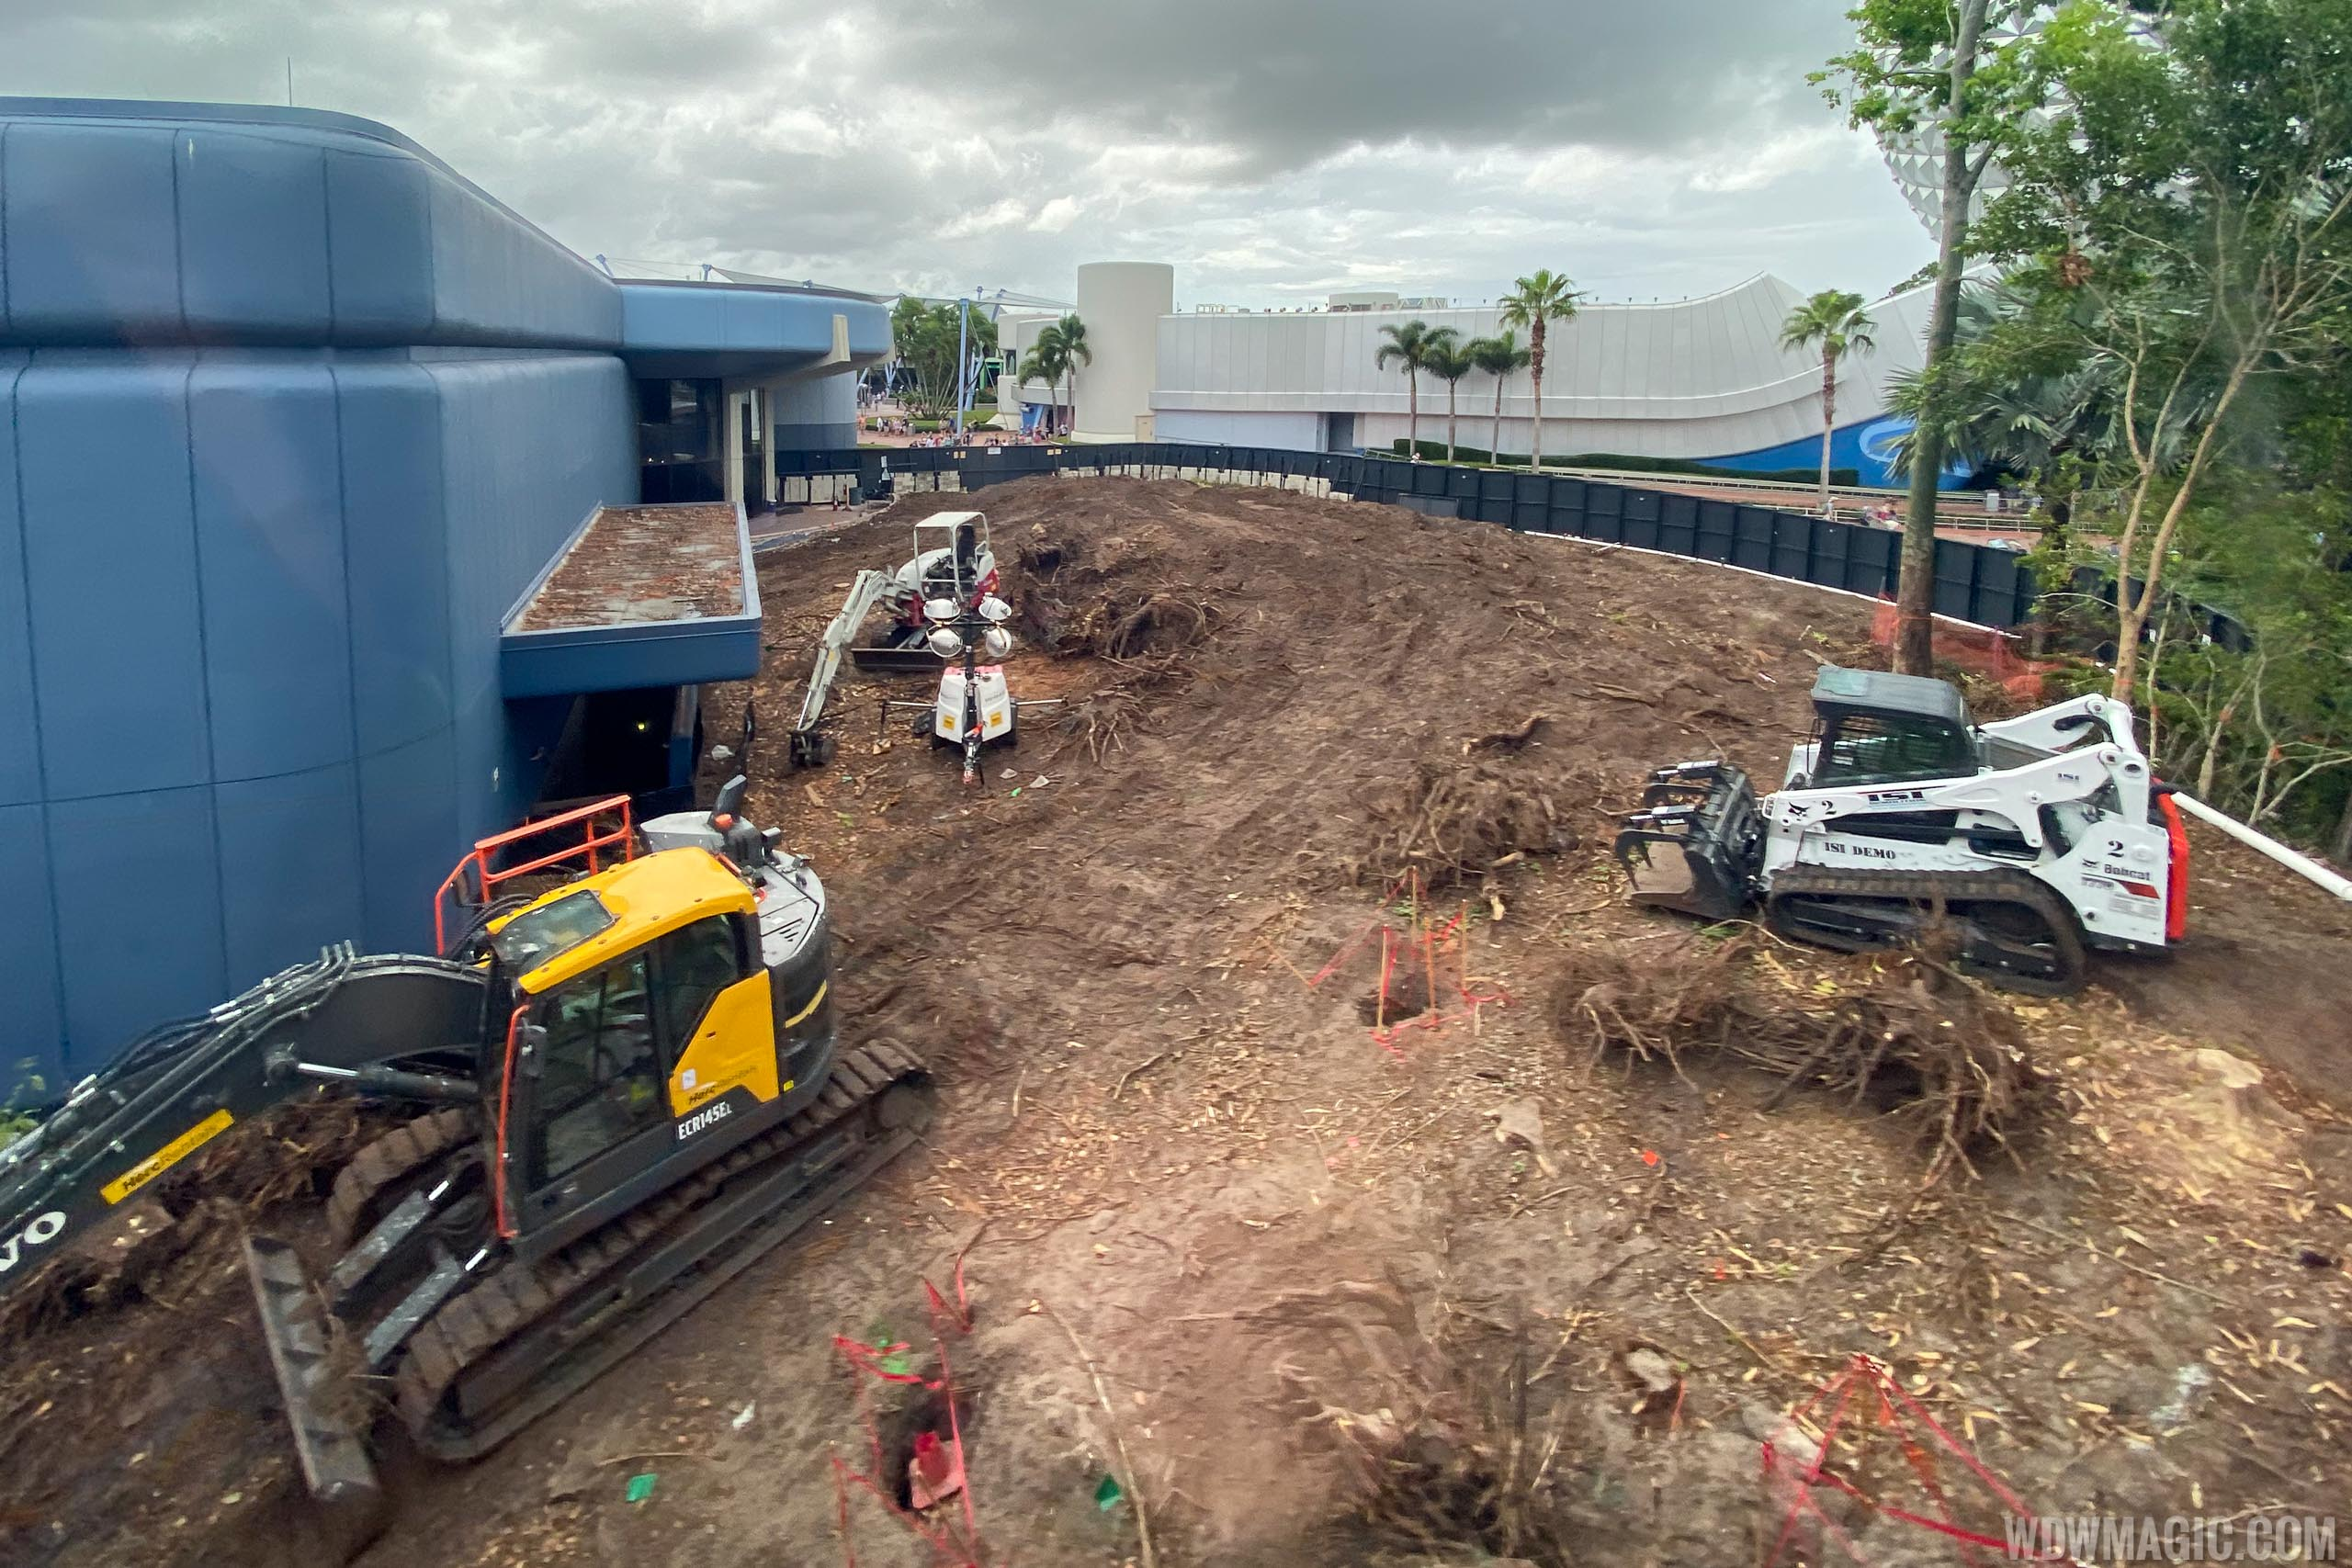 Epcot central area construction October 2019 - Between Guardians of the Galaxy and Innoventions East